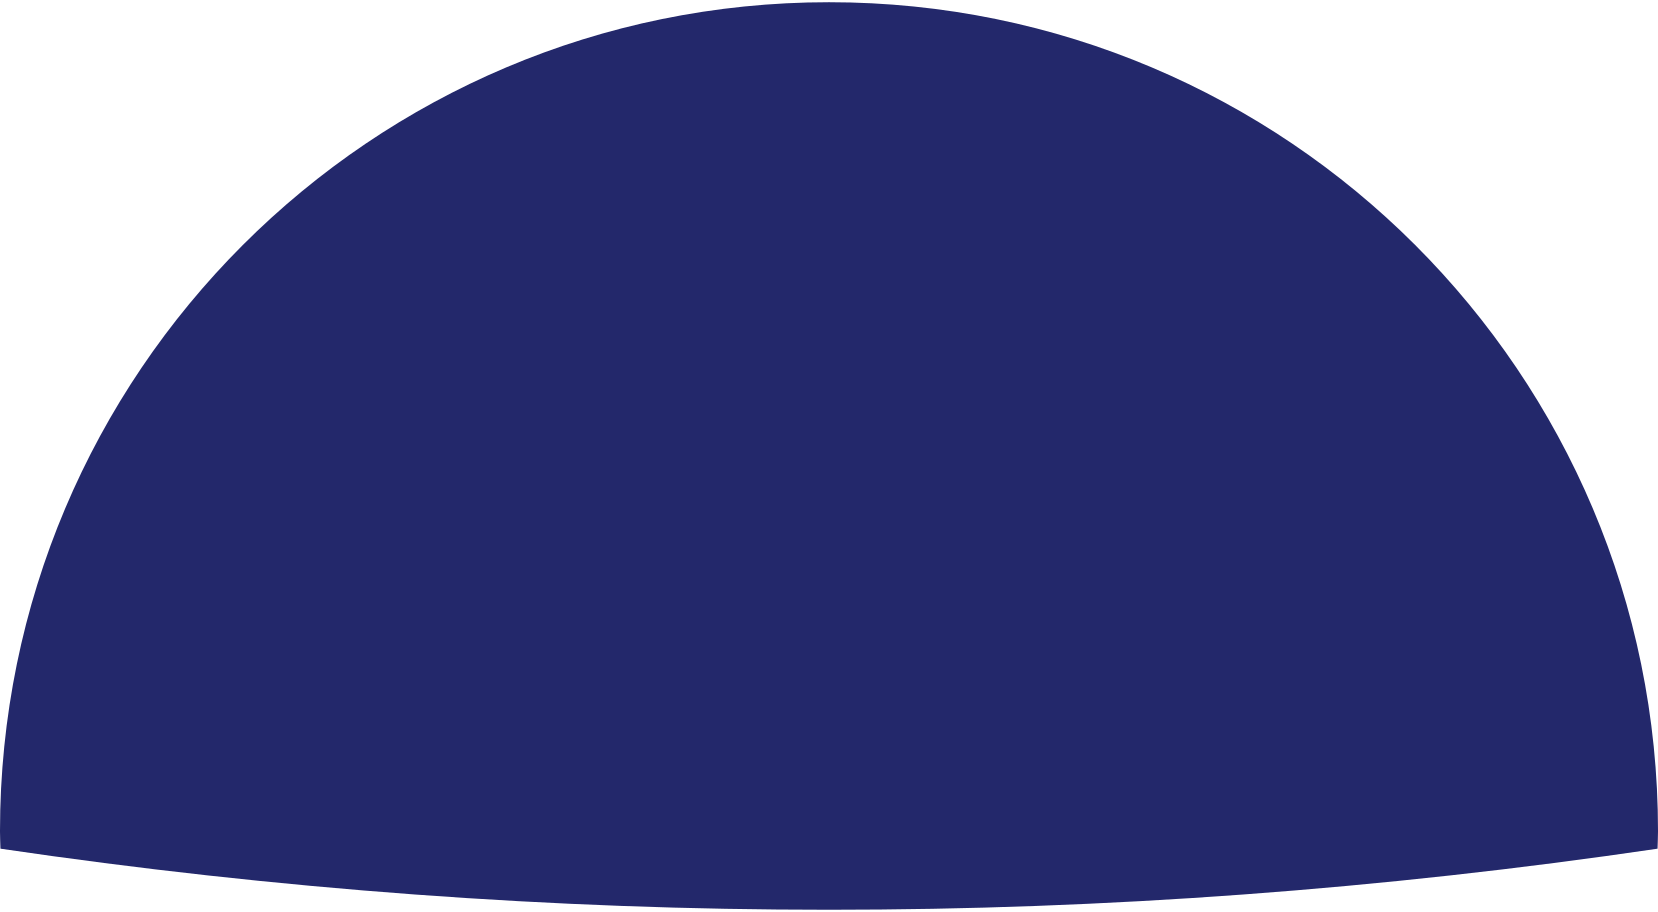 style semicircle dark blue Vector images in PNG and SVG   Icons8 Illustrations